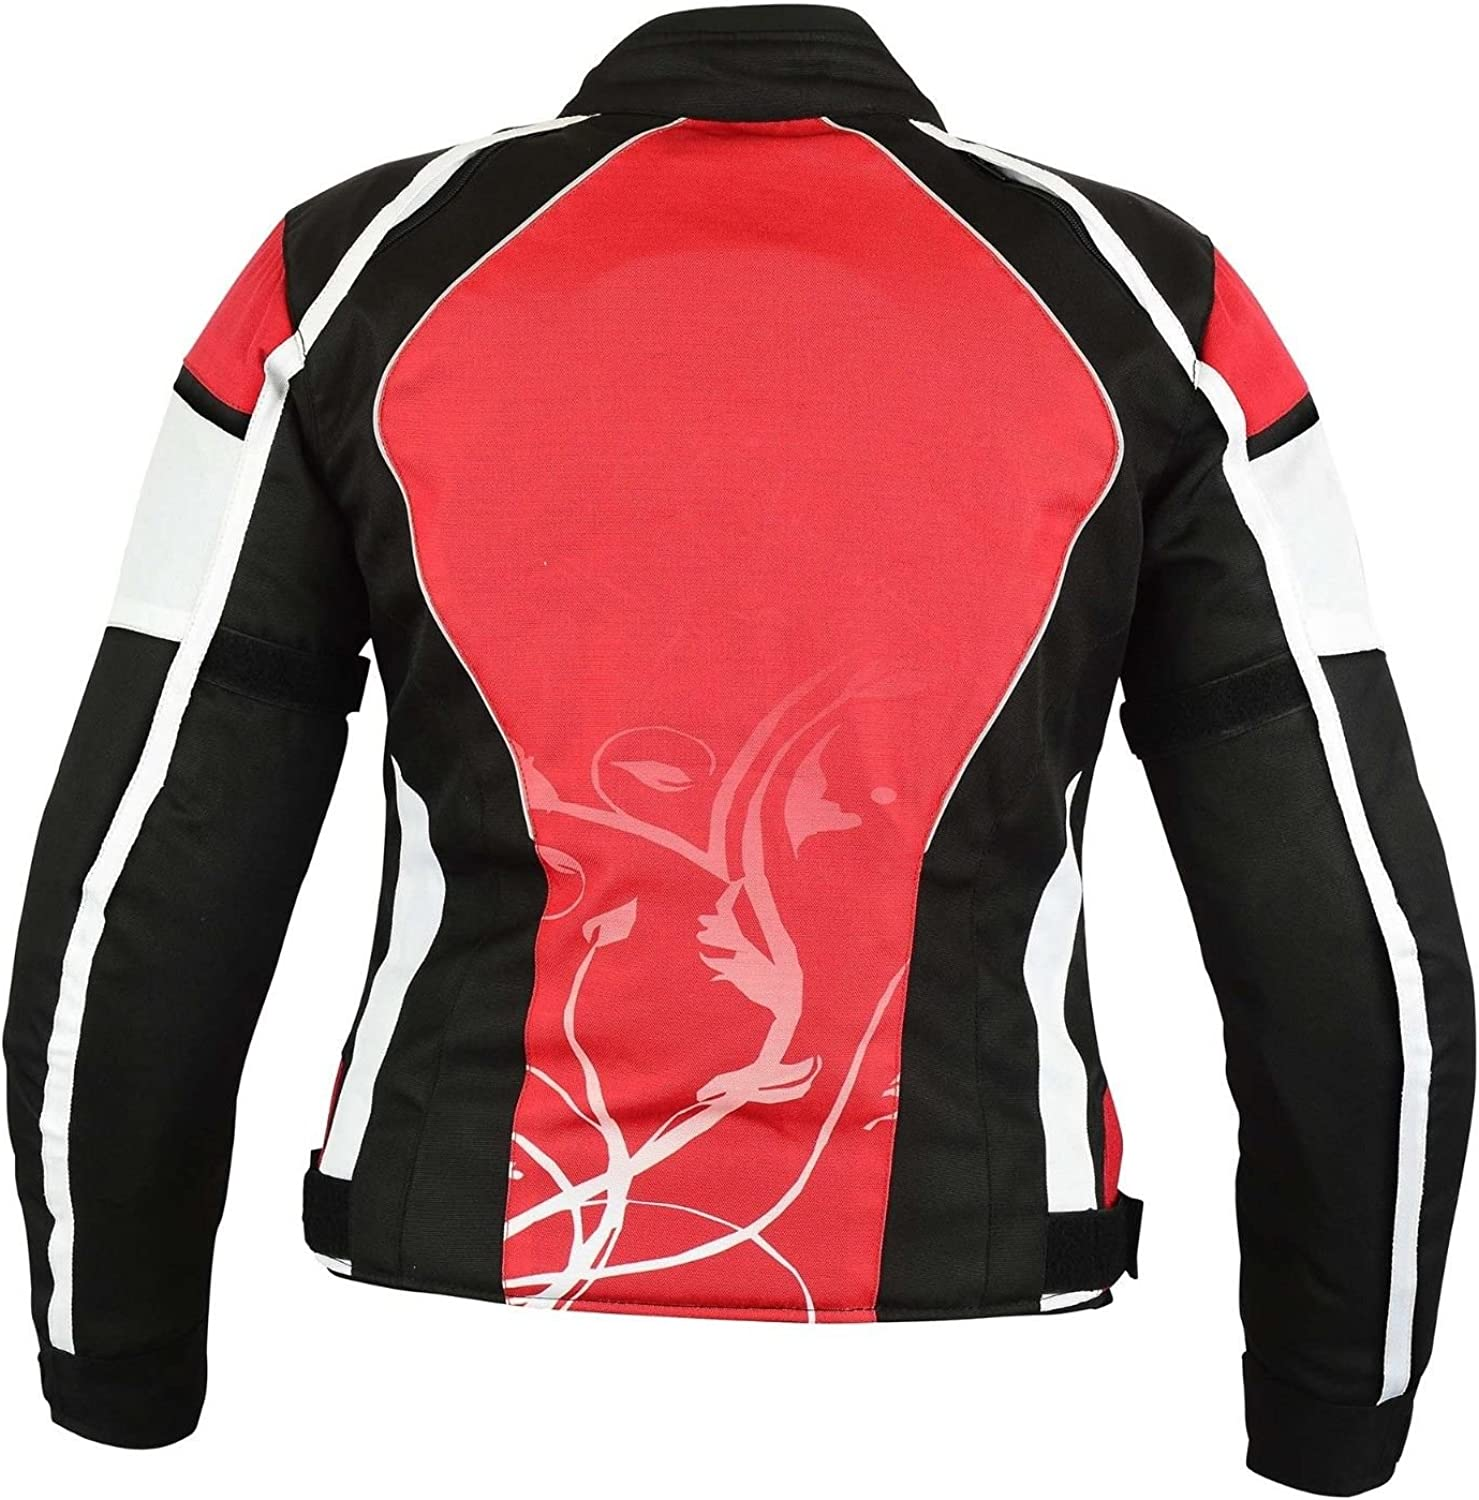 All Weather Ladies Motorbike Jacket Women Waterproof Motorcycle Gears Clothing in Cordura Fabric with Armours Spiral Dotted First Textured Red